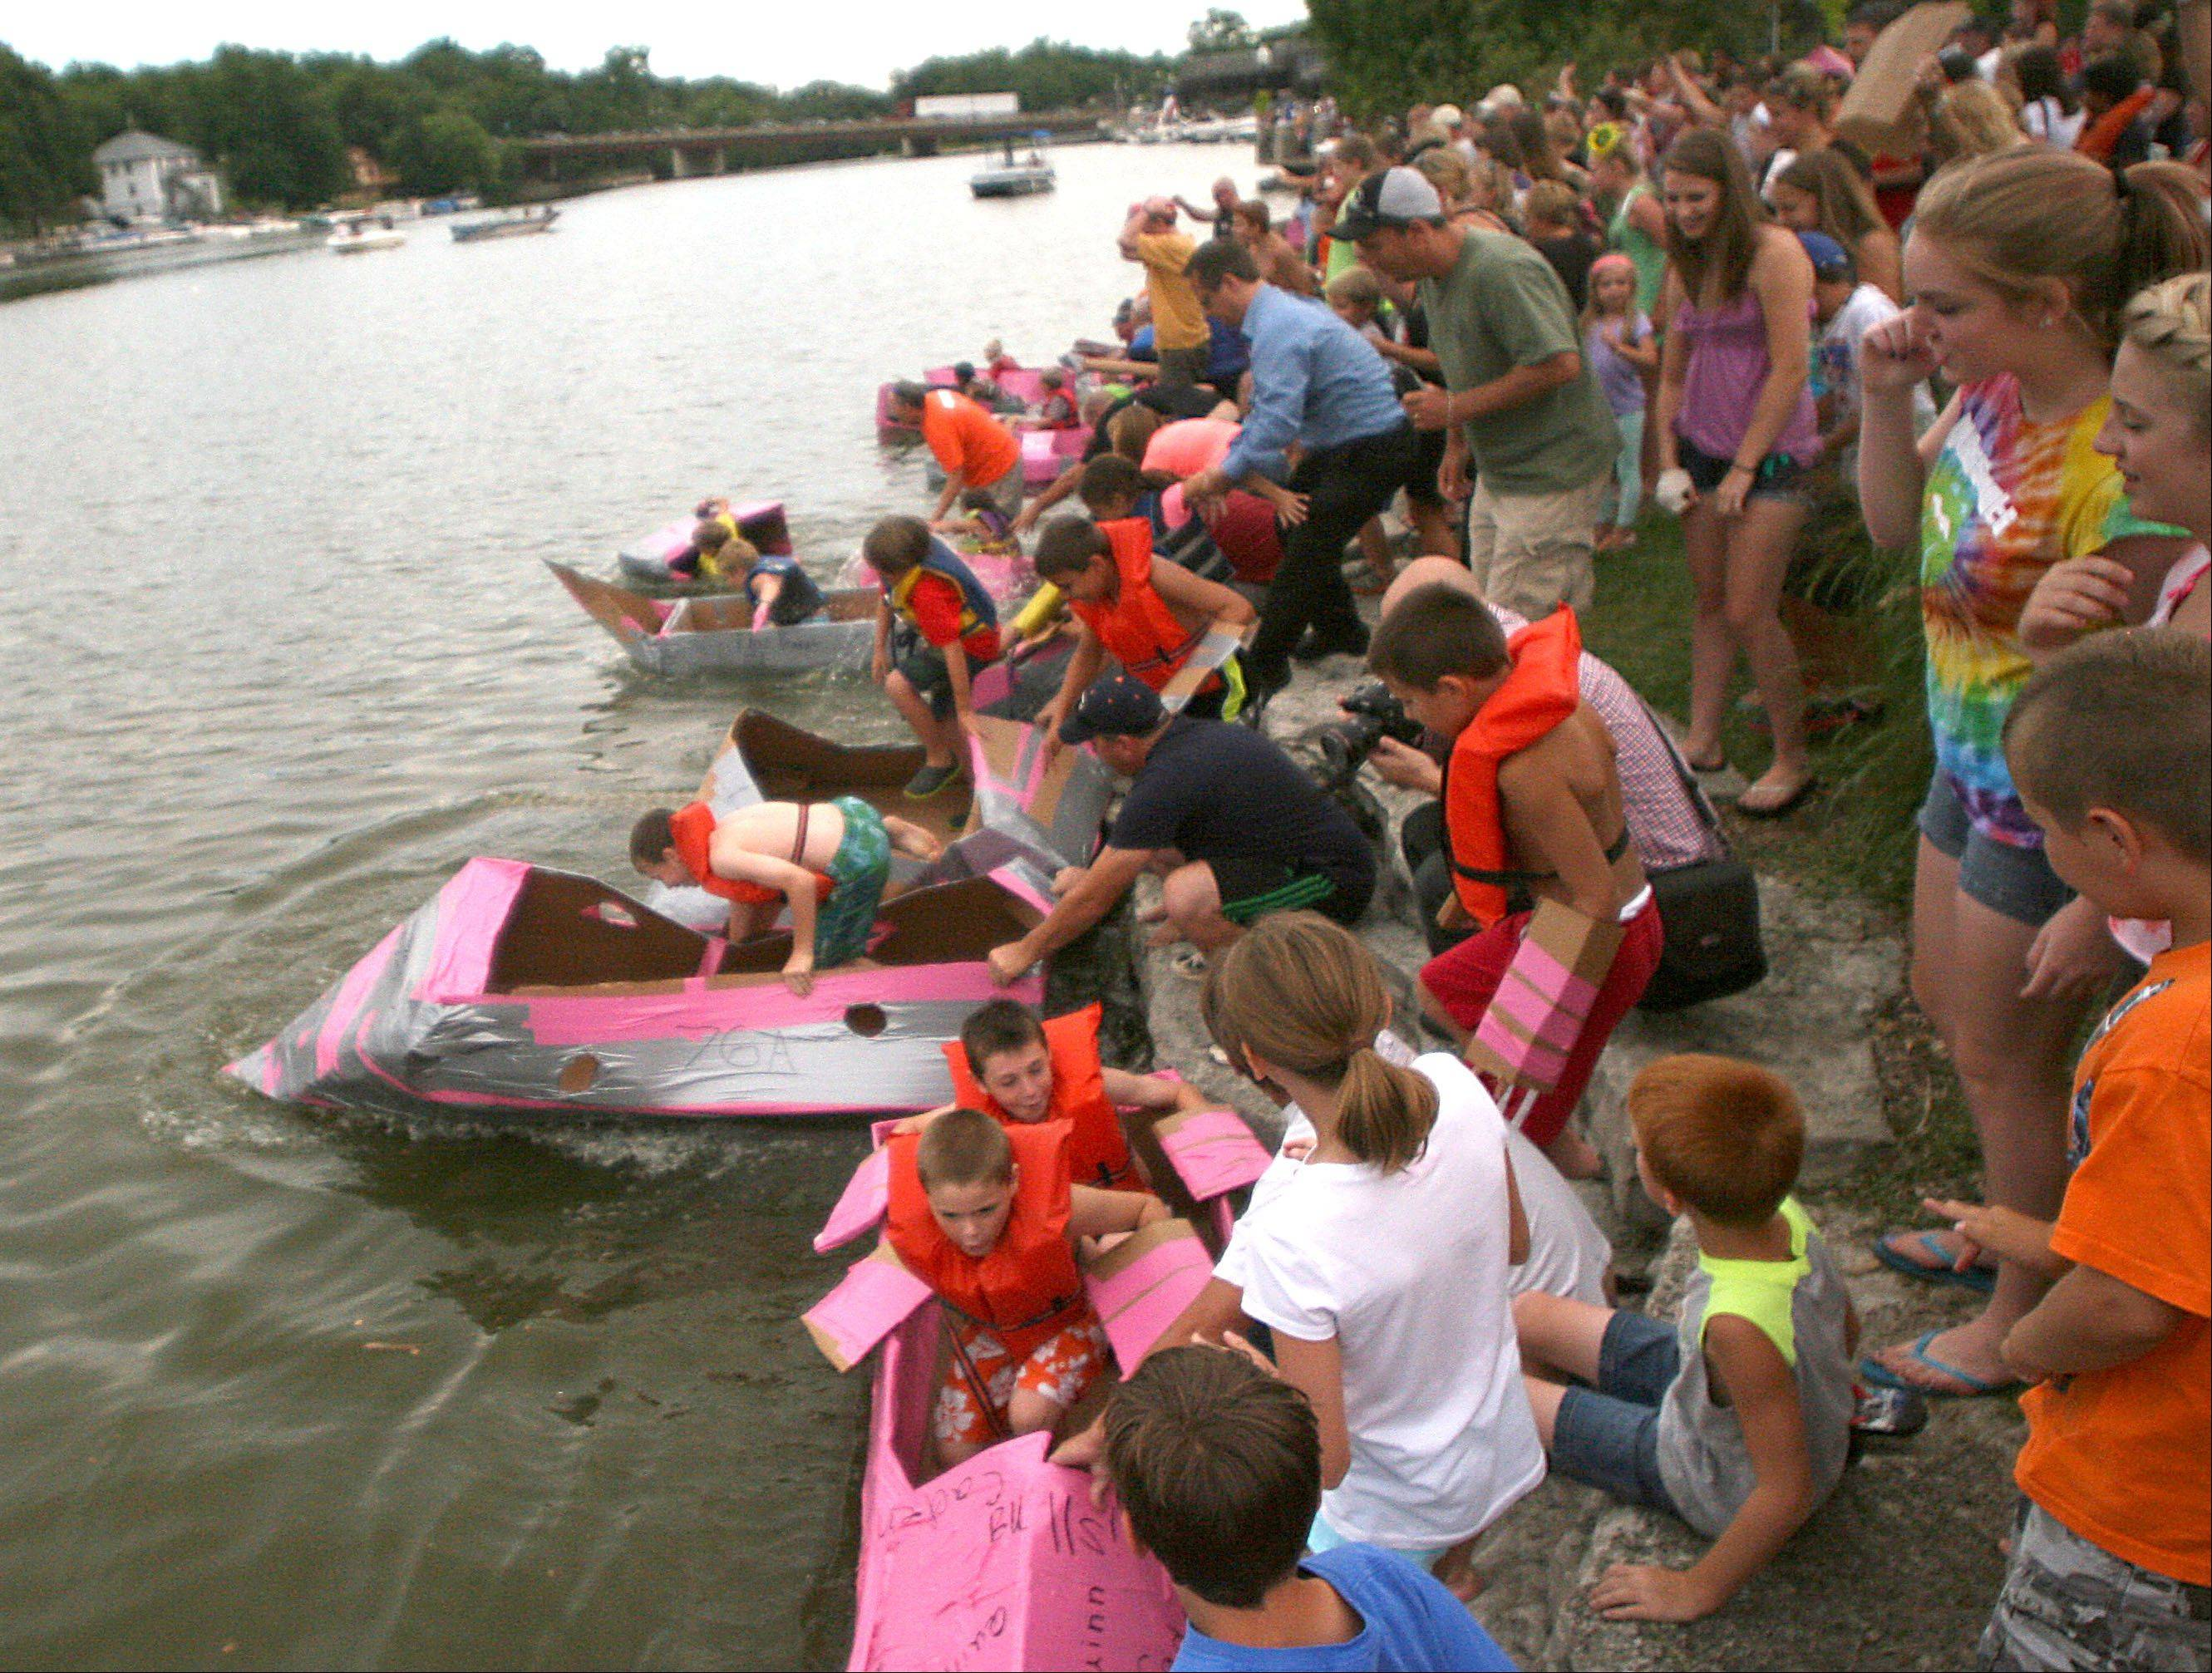 Participants launch at the start of the juniors race during the Cardboard Boat Regatta as part of Founders' Days festivities on the Fox River in Algonquin Thursday night.